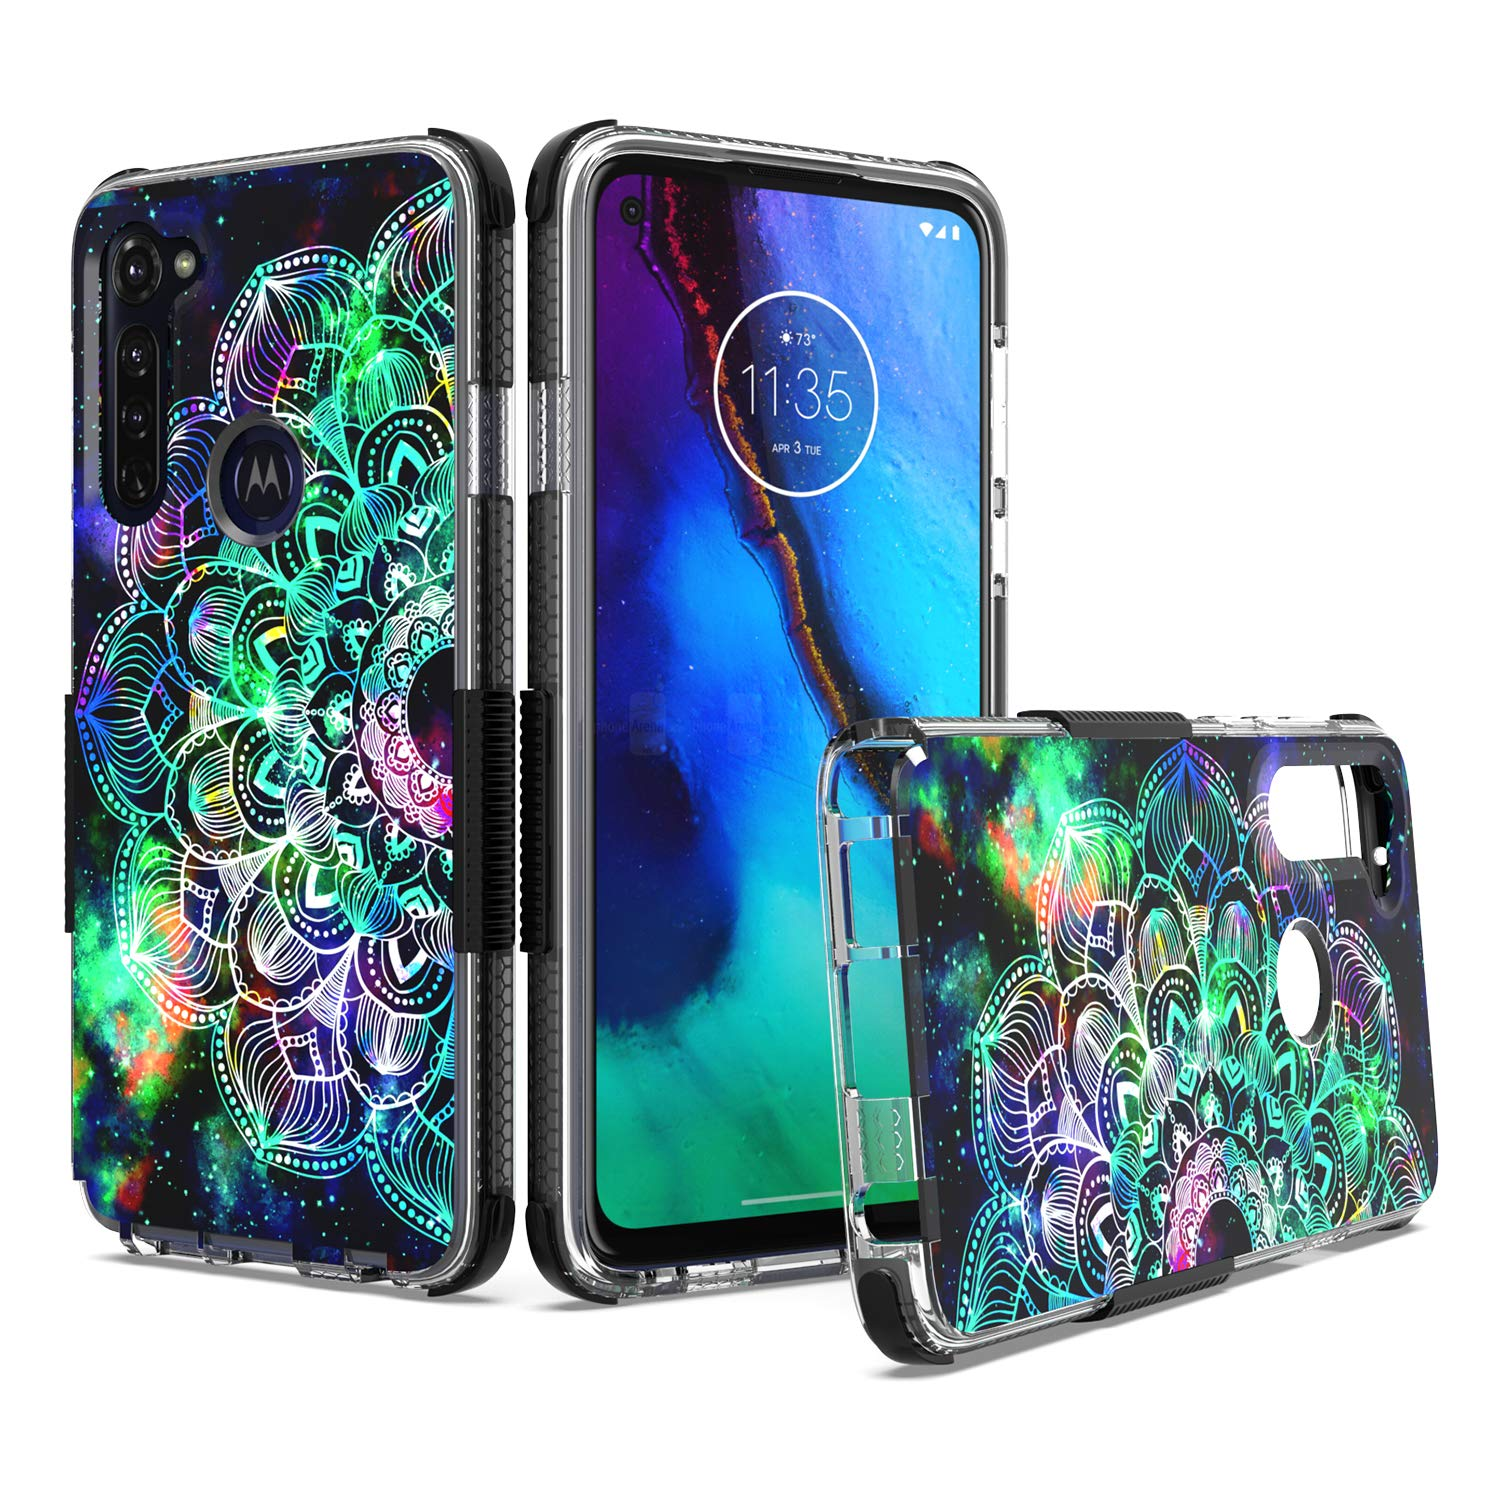 Soft Clear TPU Case with 3D Printed Mandala Galaxy Hybrid Case Shockproof Bumper Cover UNC Pro Cell Phone Case for Motorola Moto G-Stylus